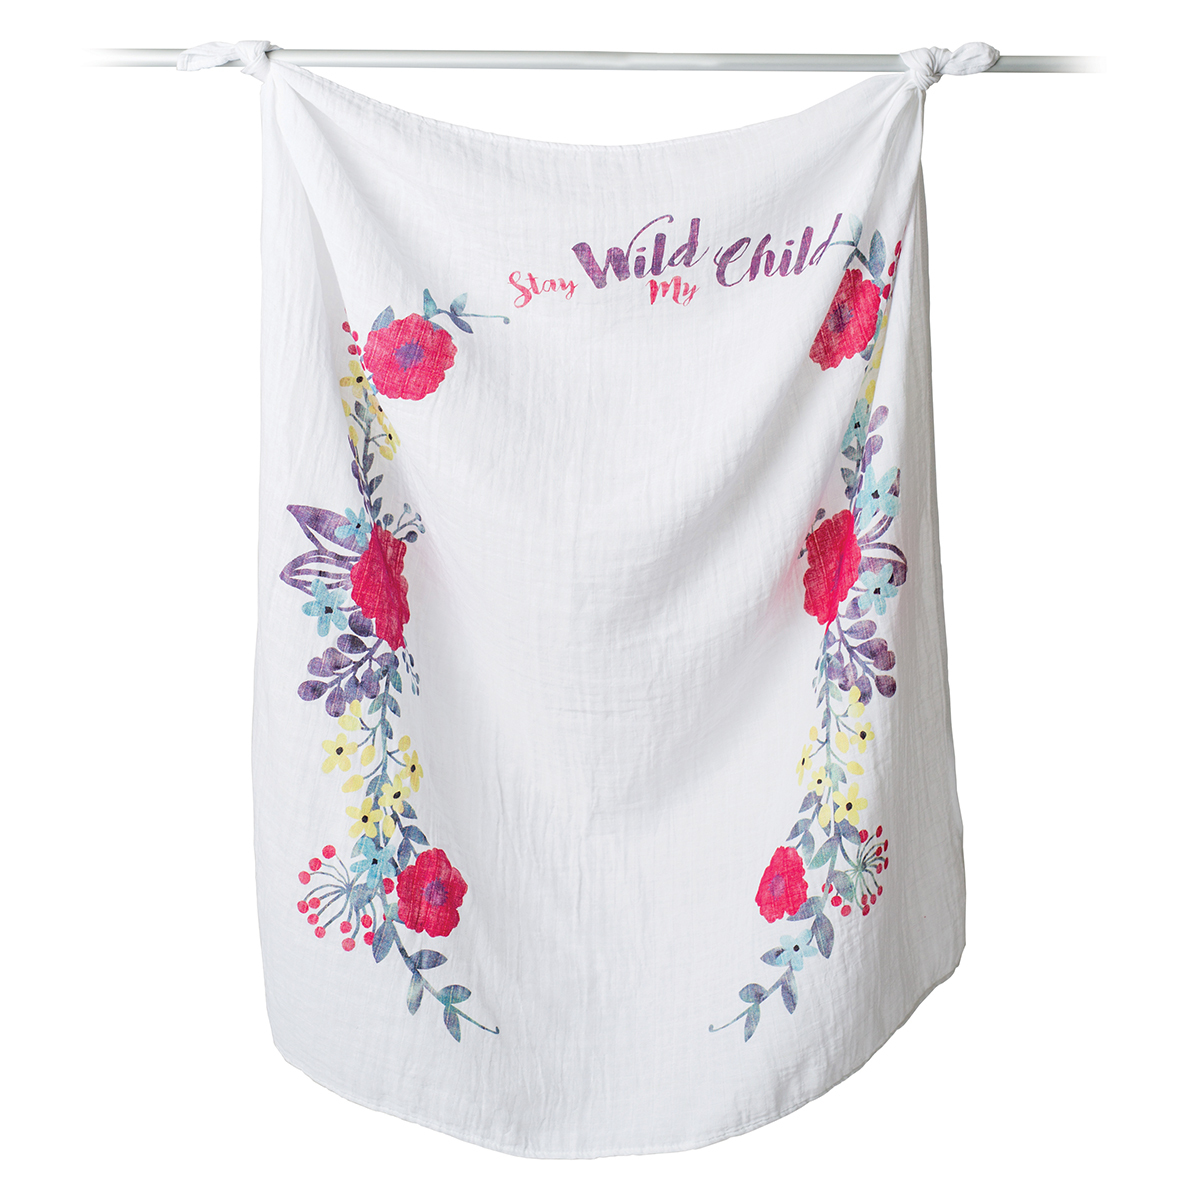 Lange Lange en Coton et Cartes - Stay Wild My Child Lange en Coton et Cartes - Stay Wild My Child